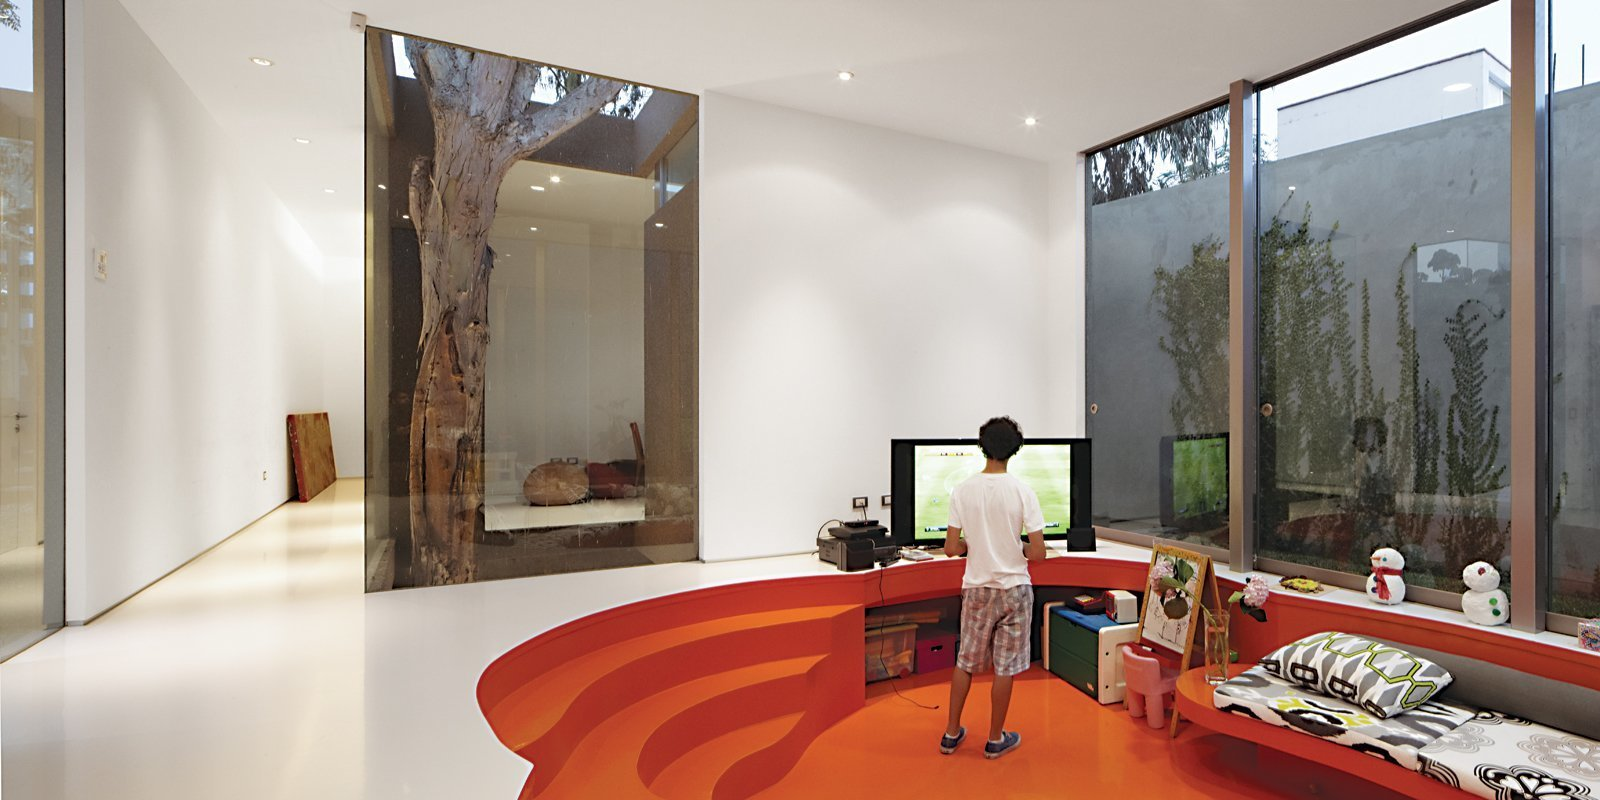 Plan Out Your Room how to plan out a rec room in your home - photo 3 of 14 - dwell